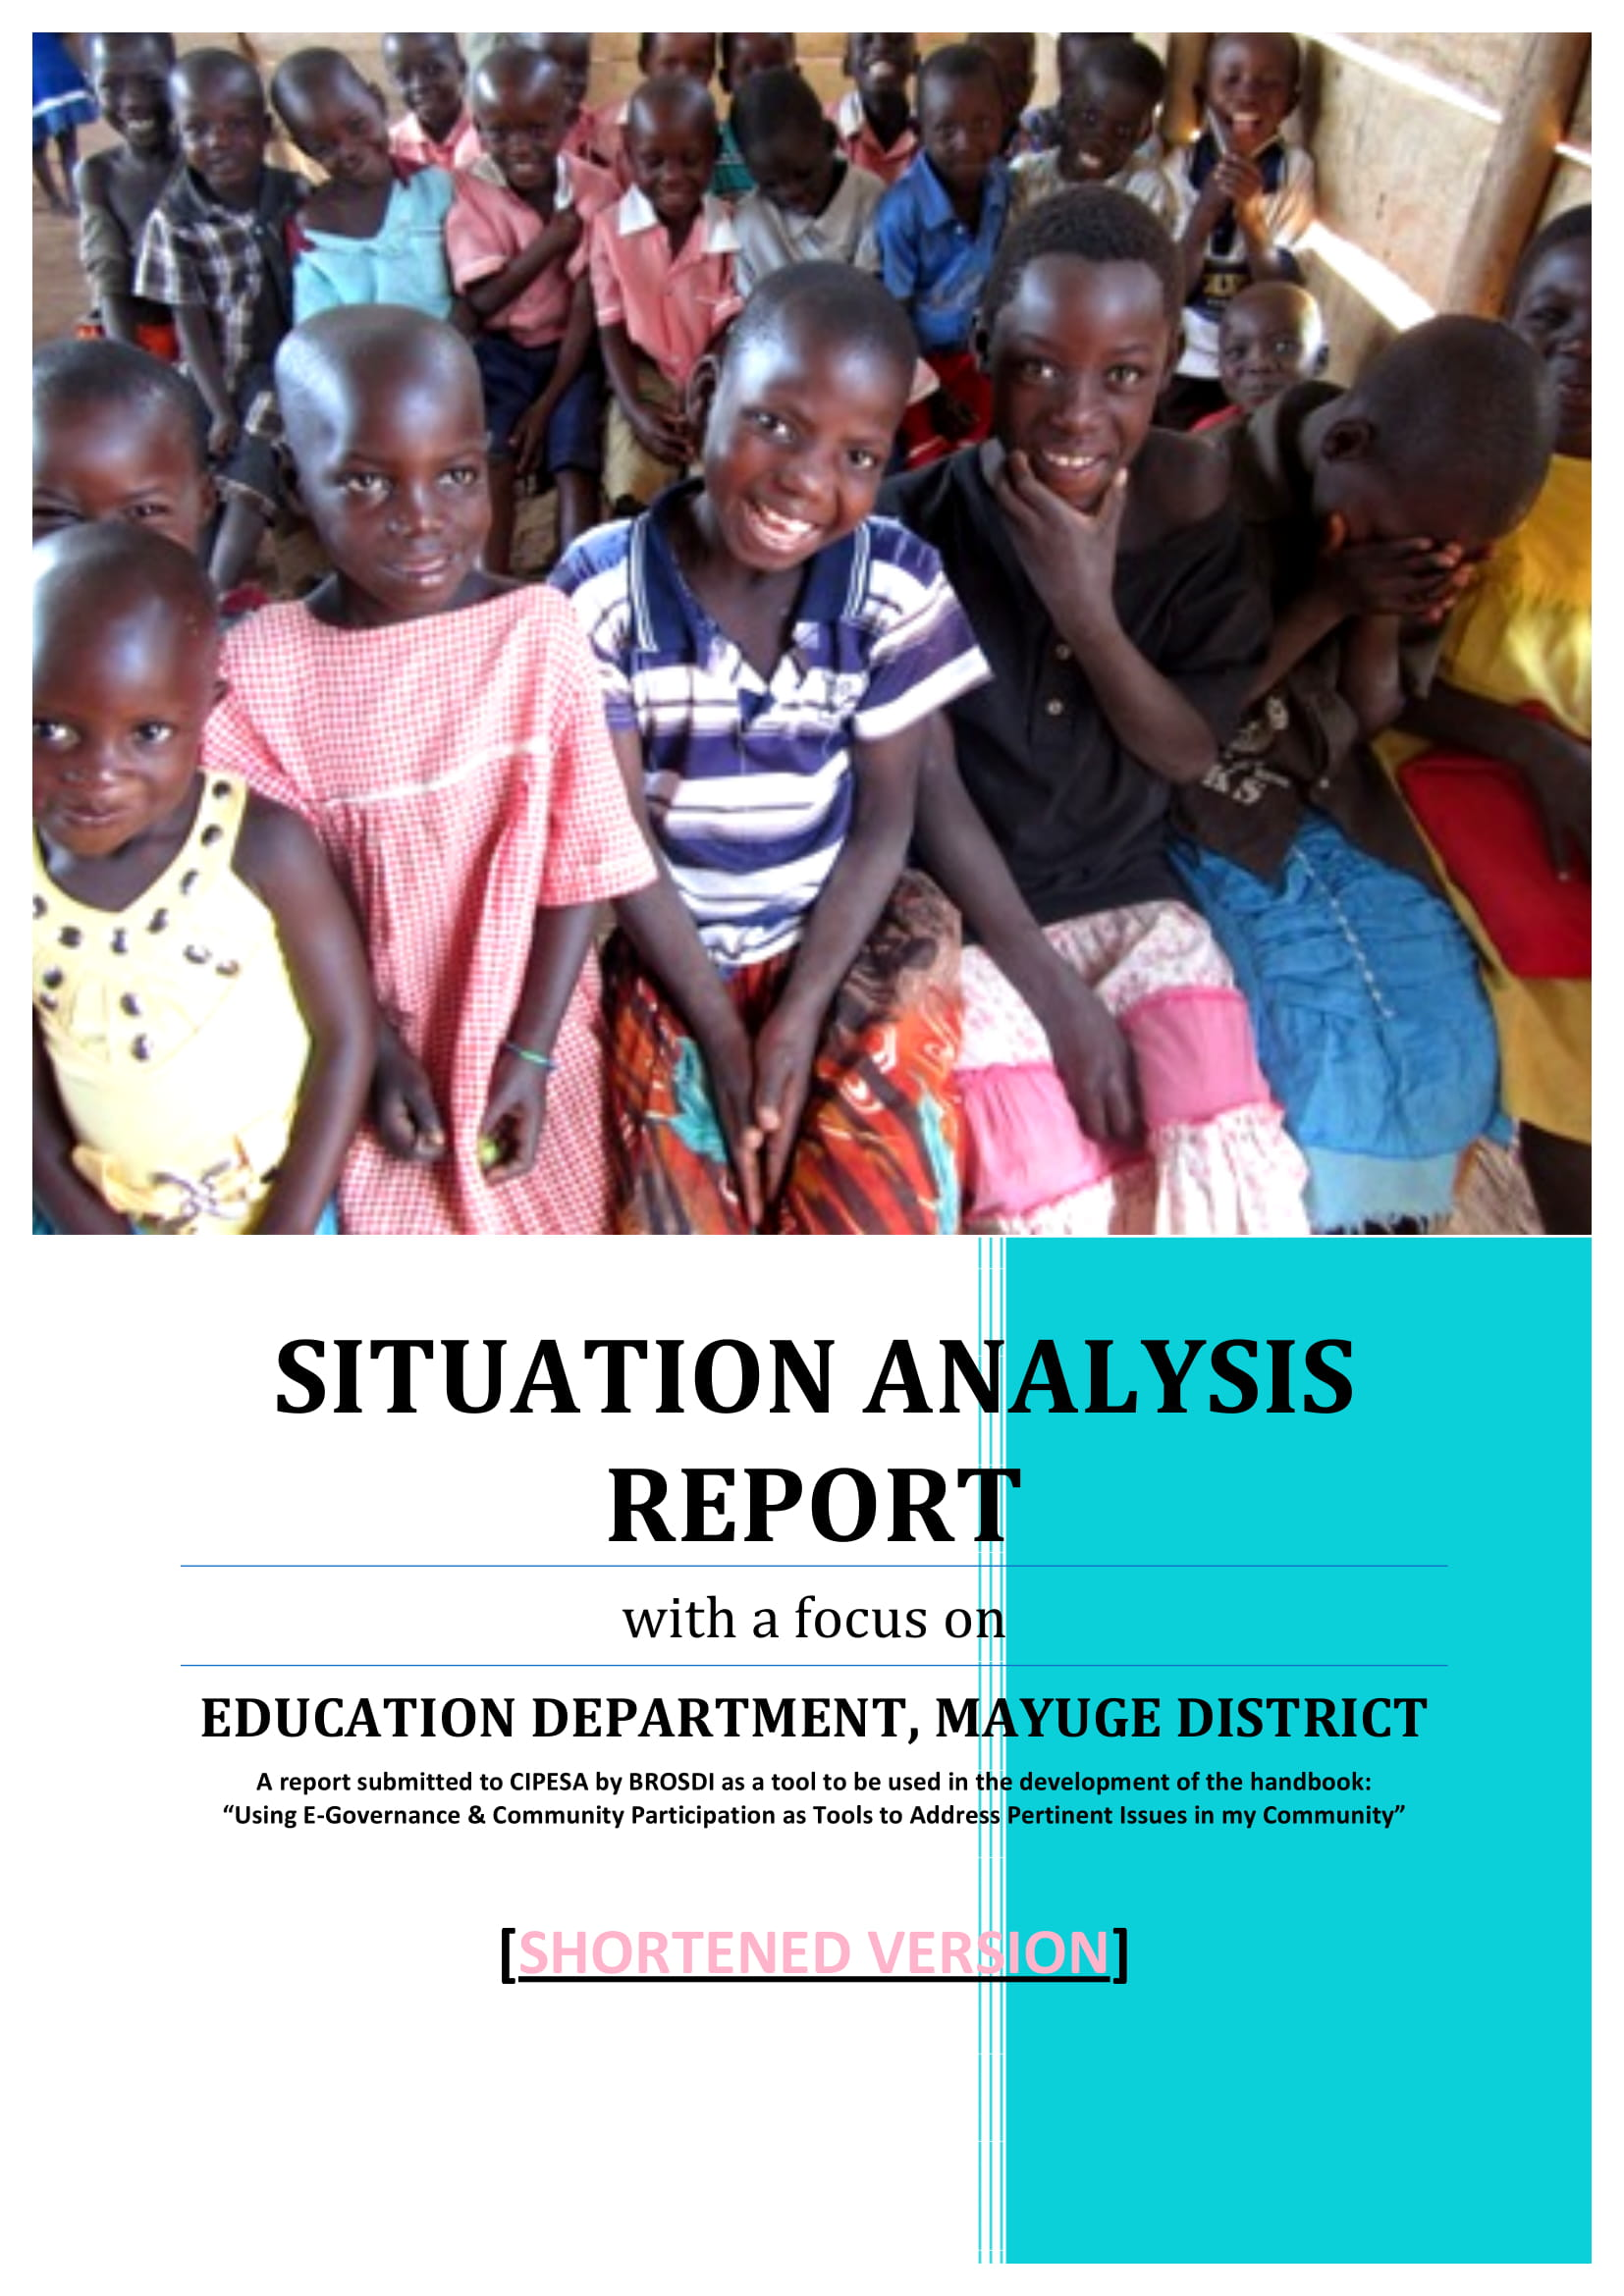 situation analysis report example 01